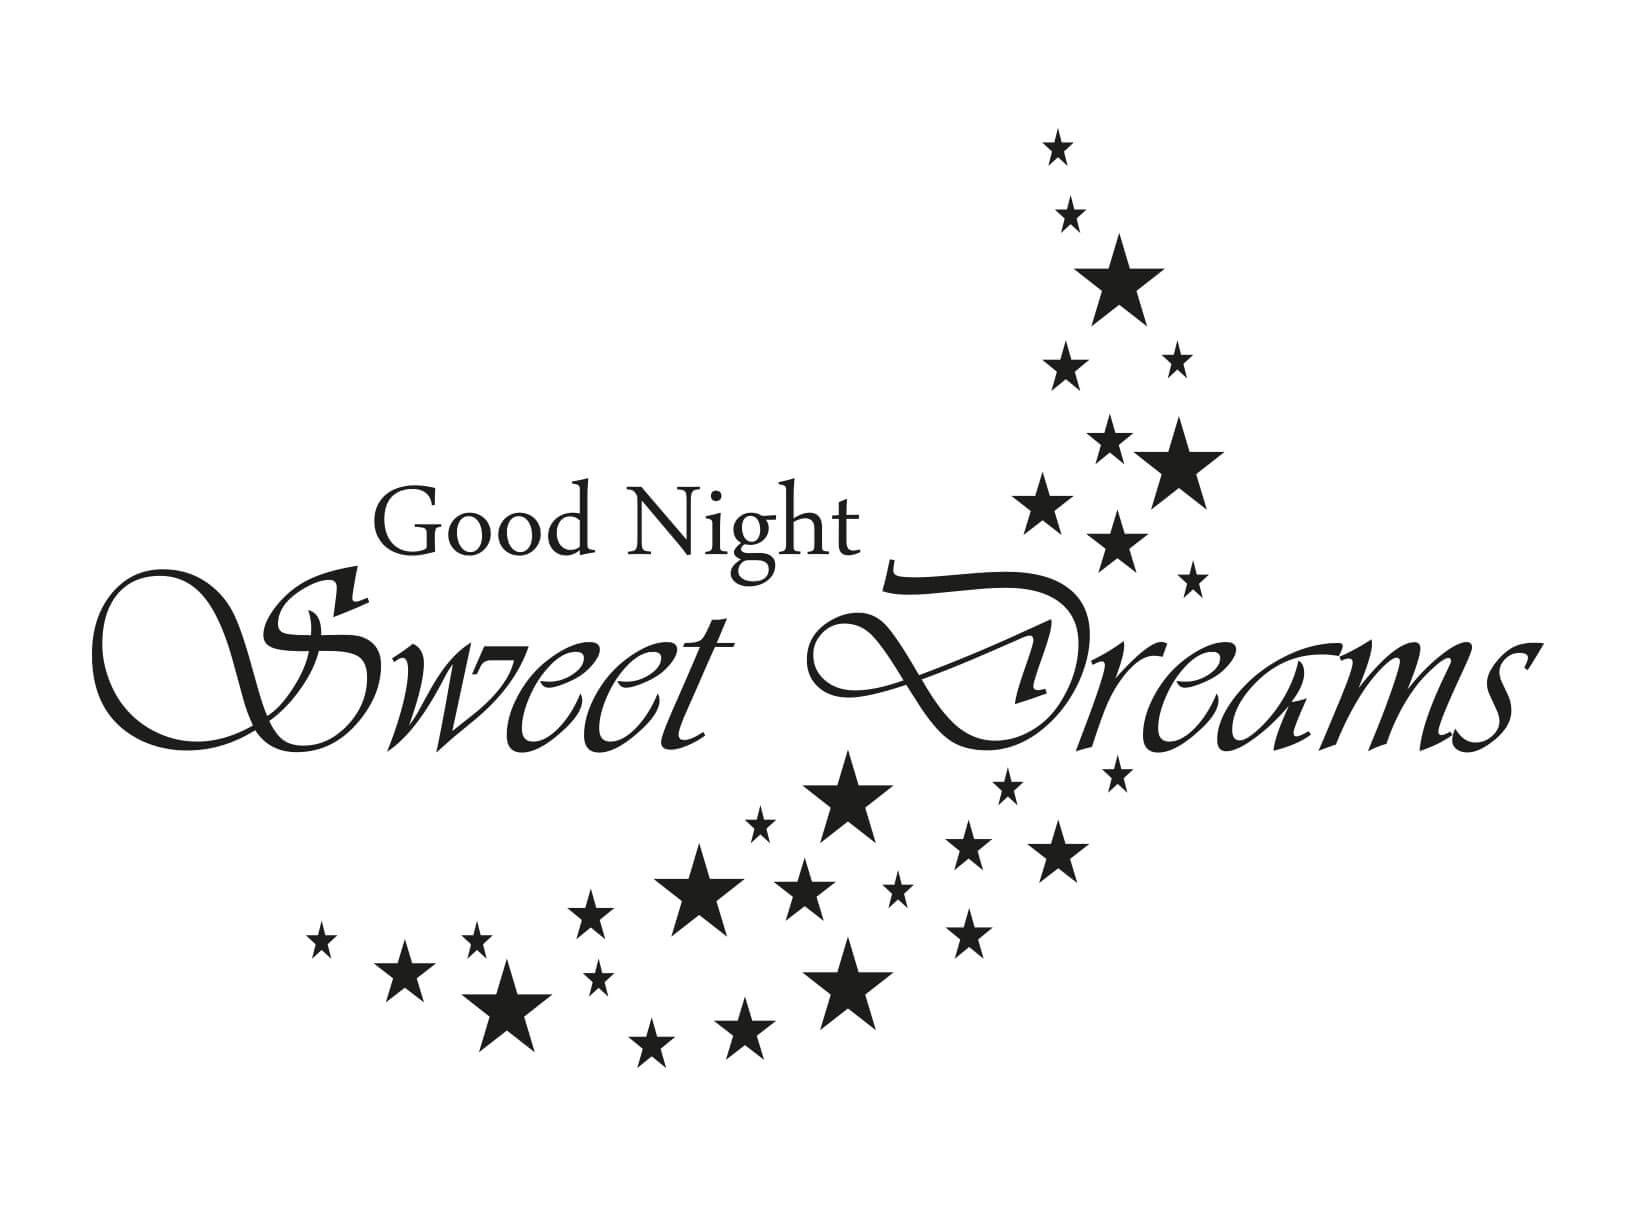 Muursticker u0026quot;Good Night, Sweet Dreamsu0026quot; met sterren maan - Teksten ...